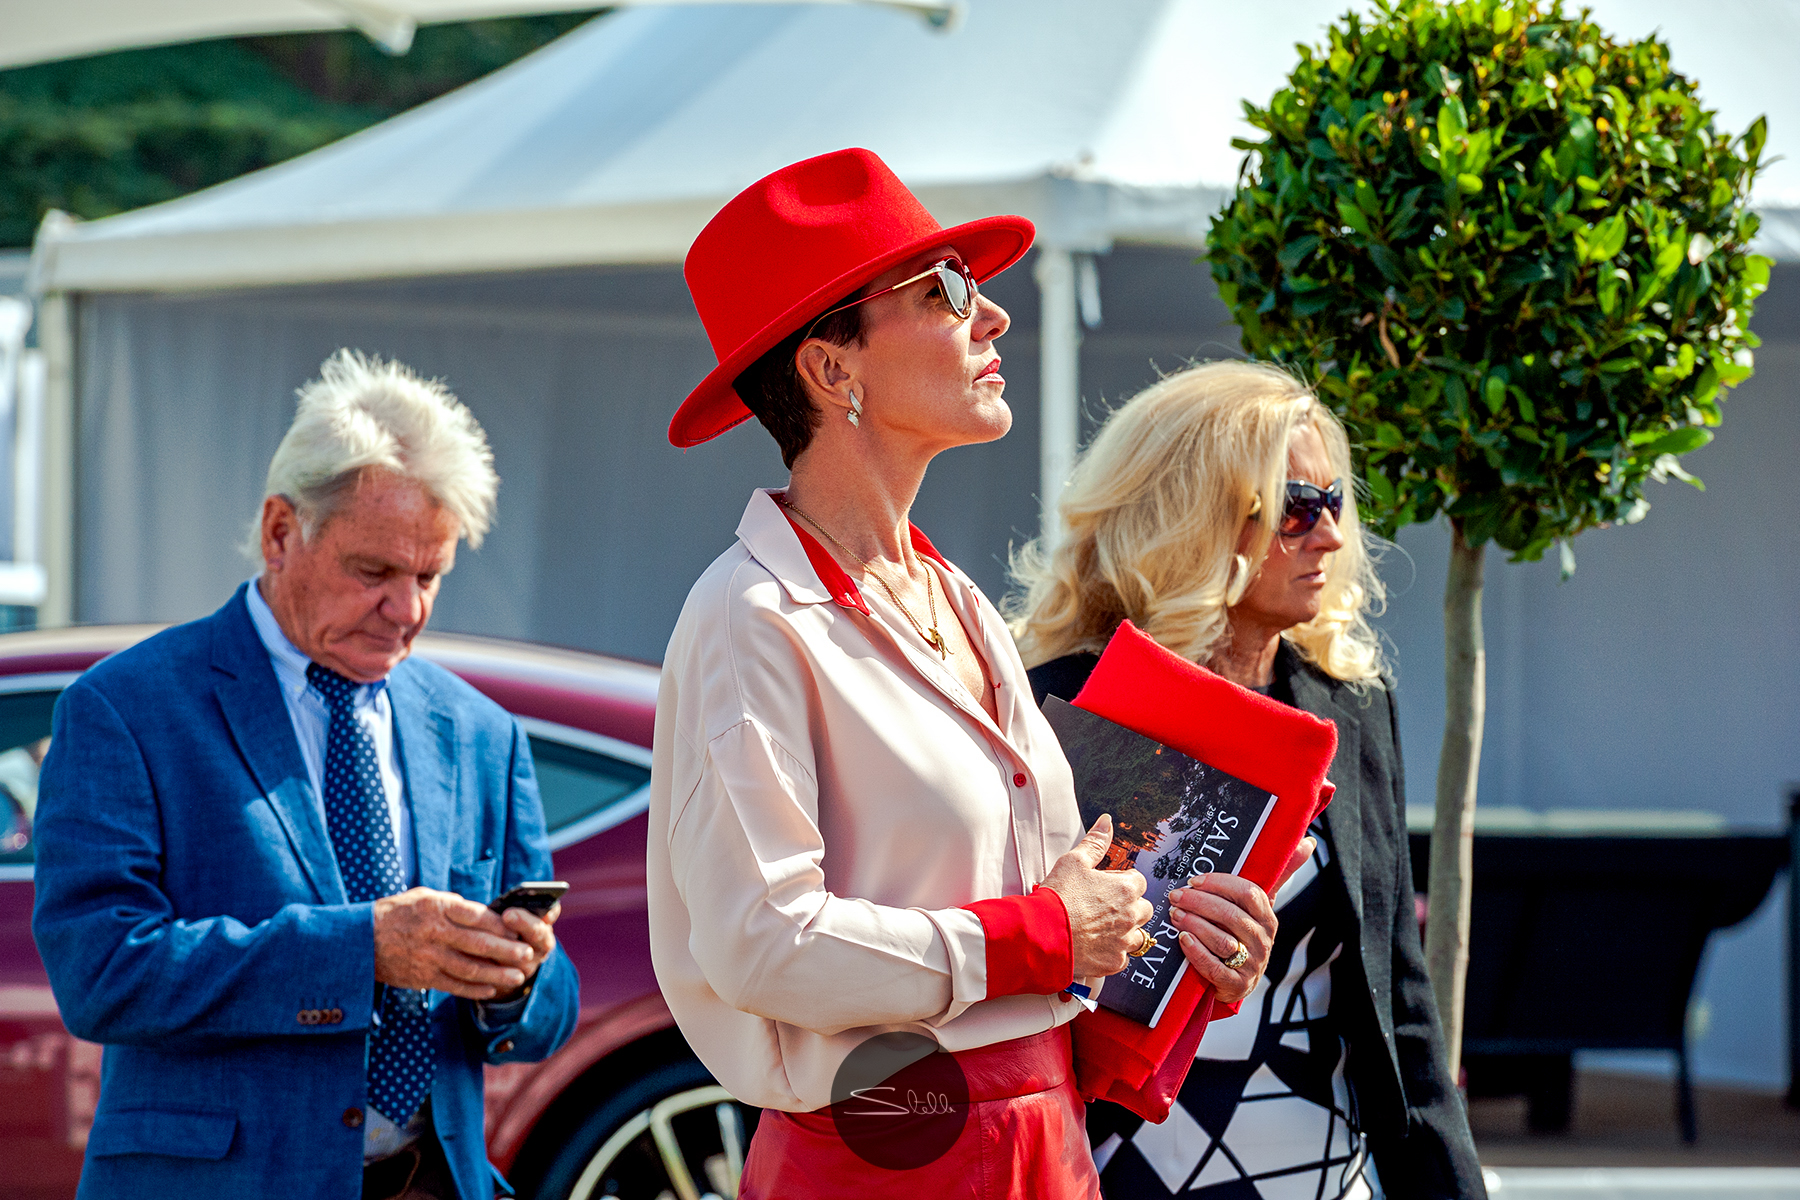 Stella Scordellis Salon Prive 2018 35 Watermarked.jpg